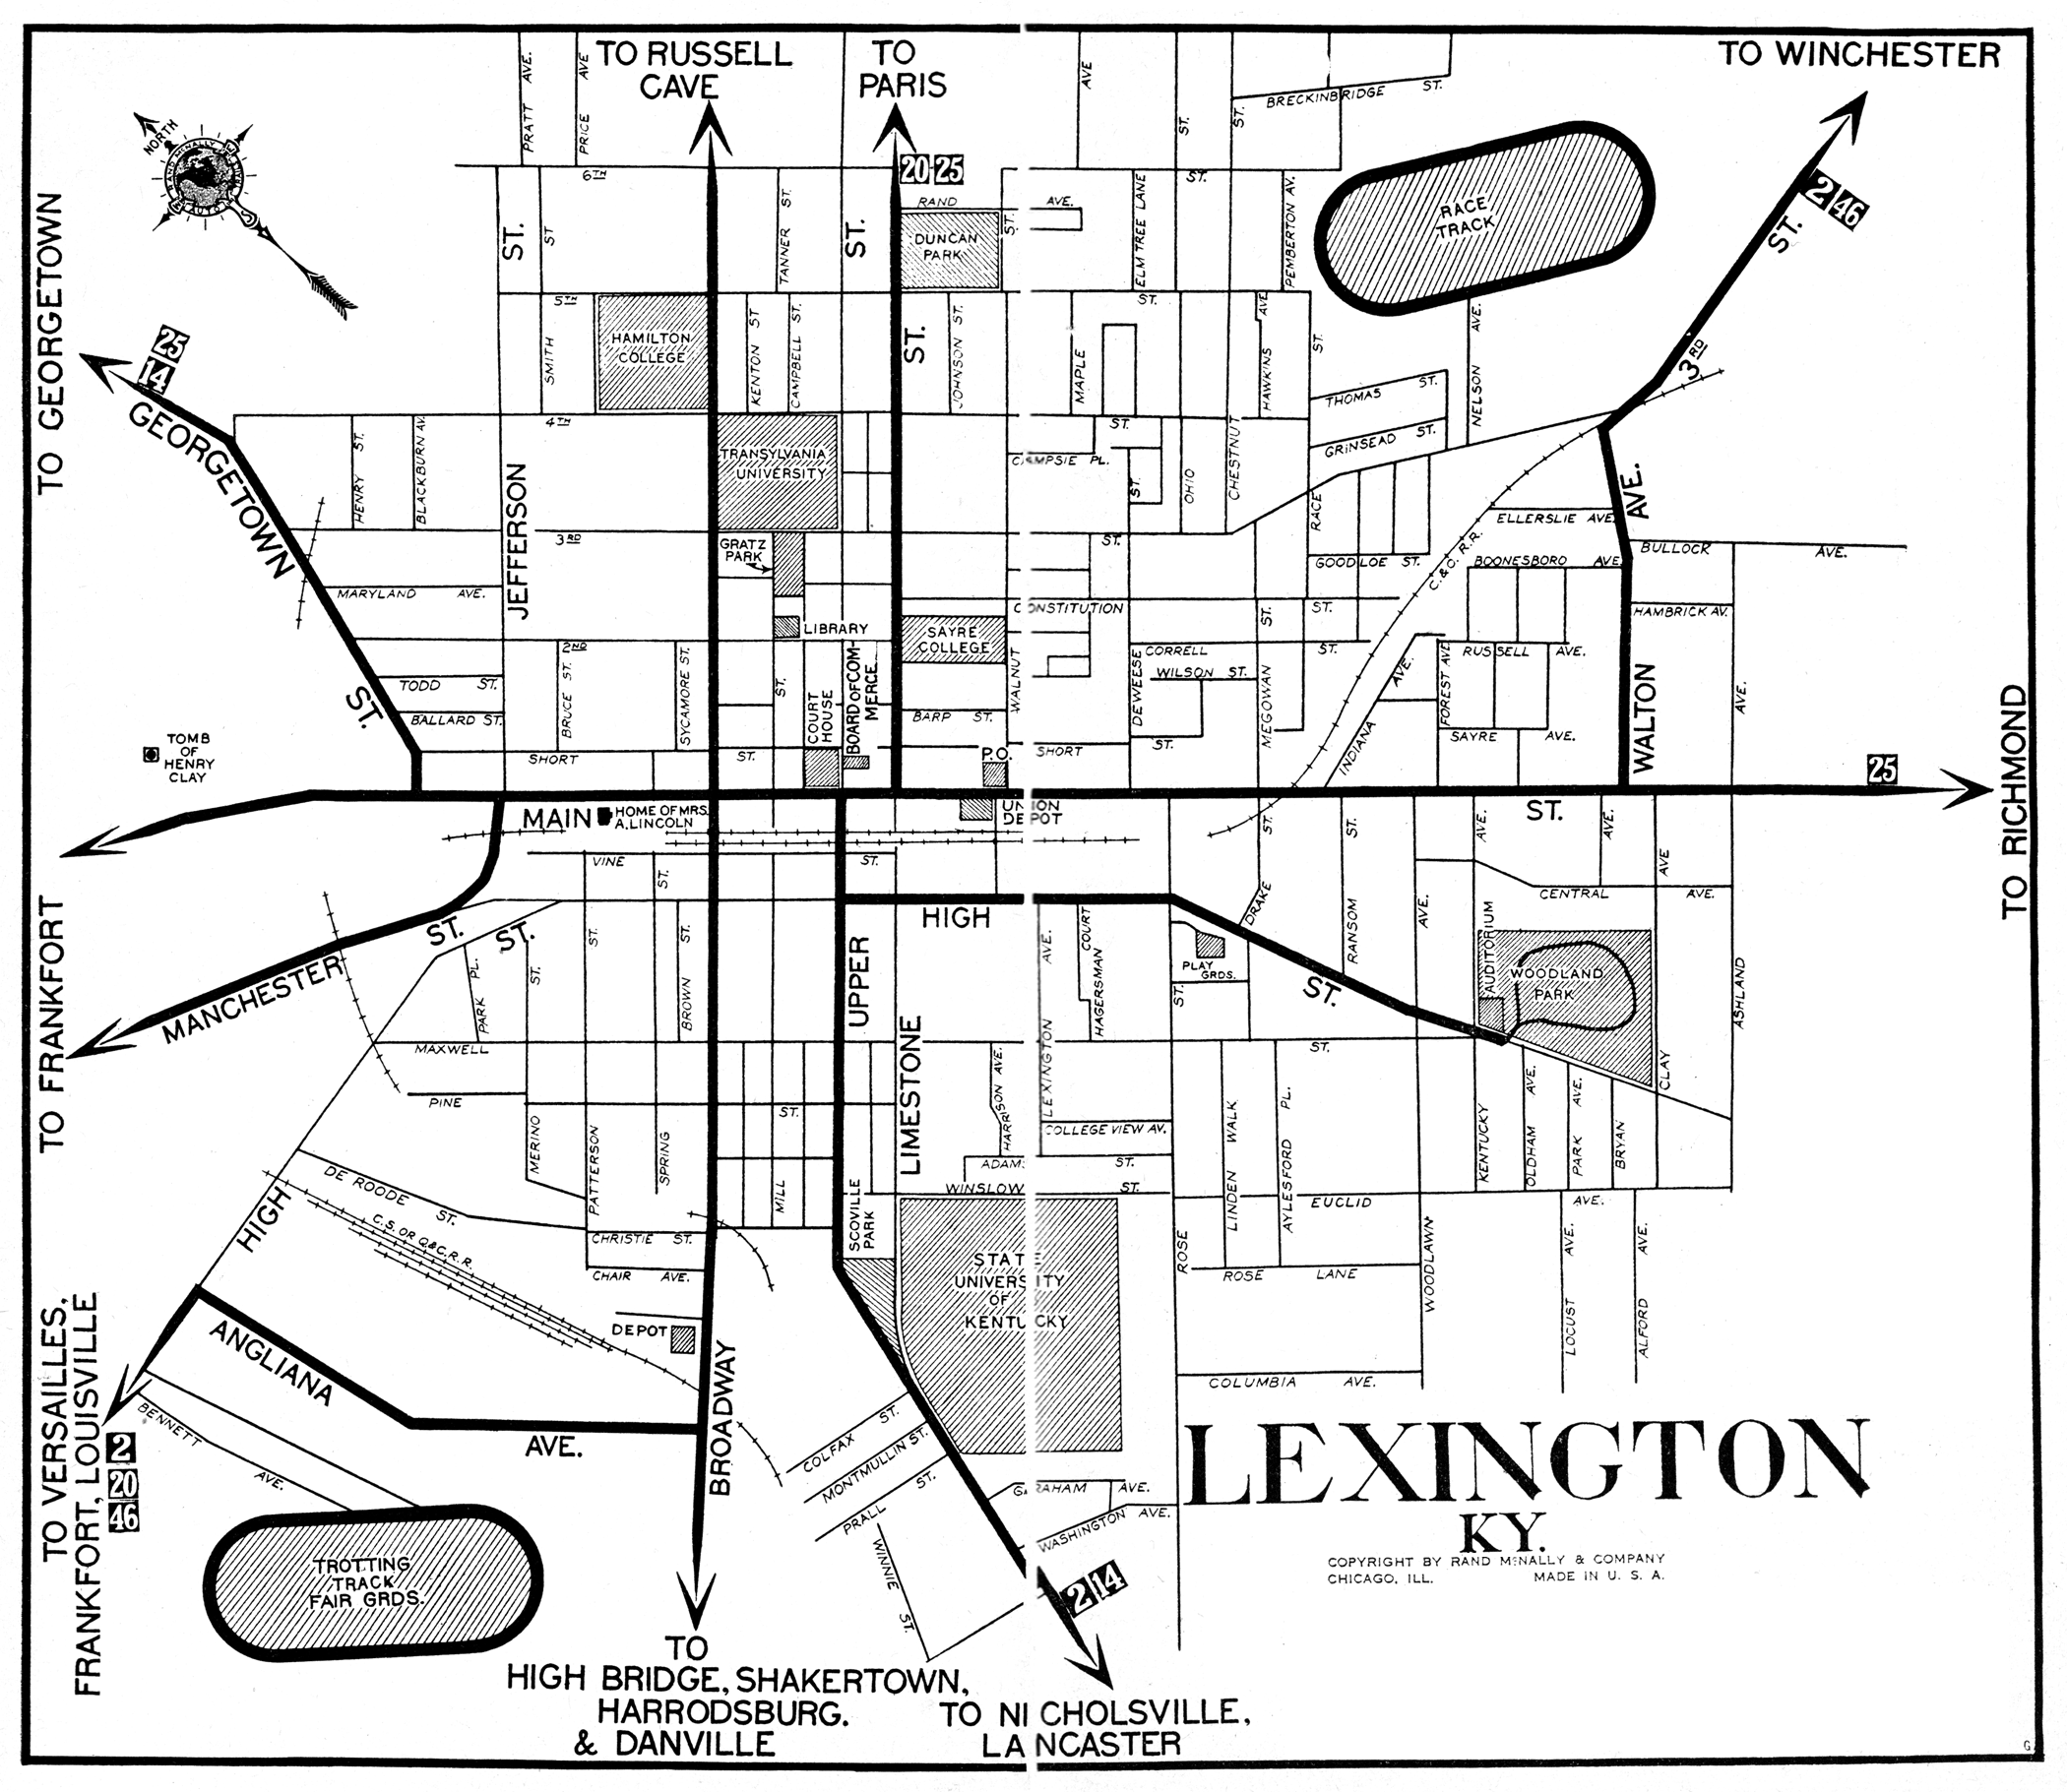 Map Image | Lexington KY History, 1900-1950 in 2019 | City